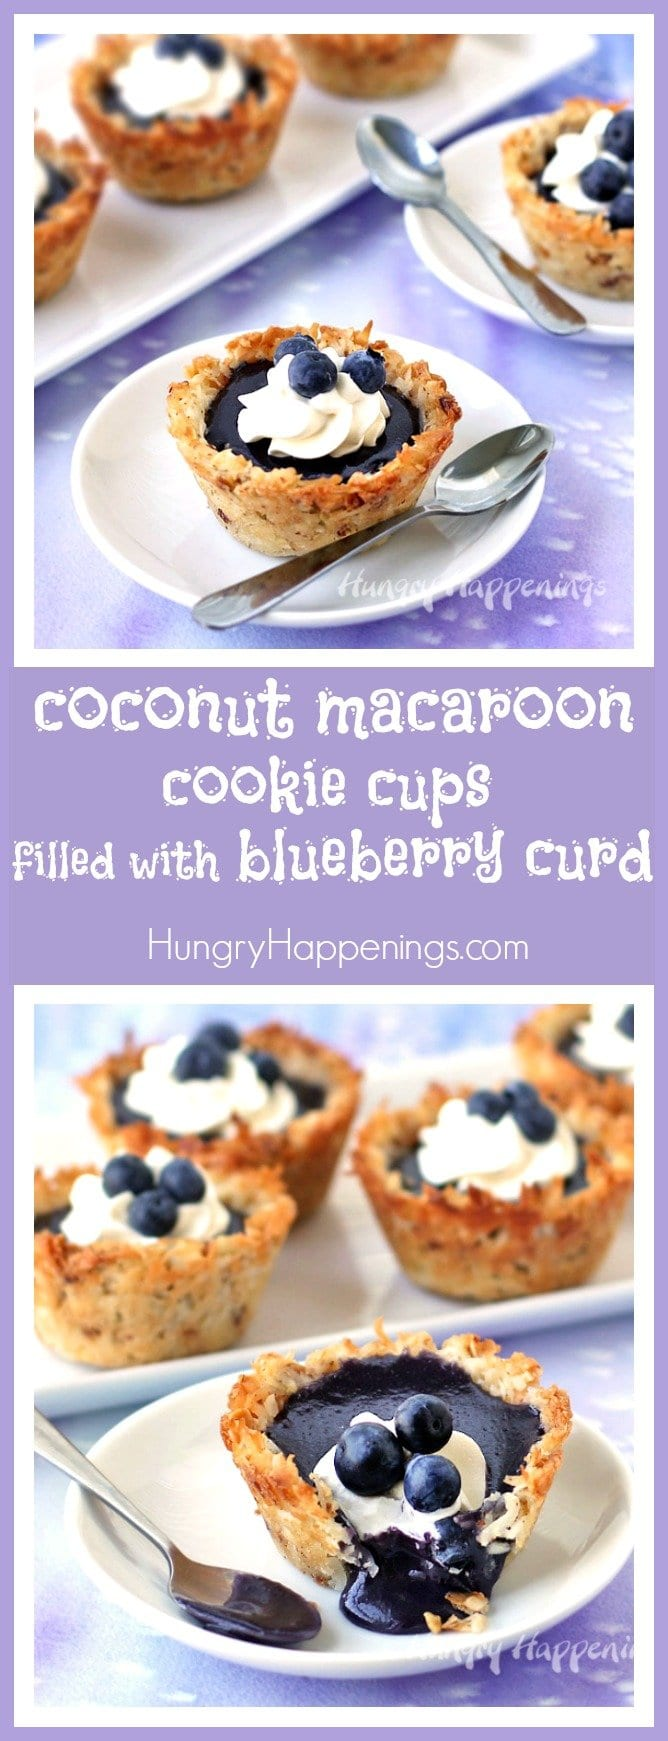 Make homemade coconut macaroon cups then fill them with freshly made blueberry curd for a lovely summer dessert.